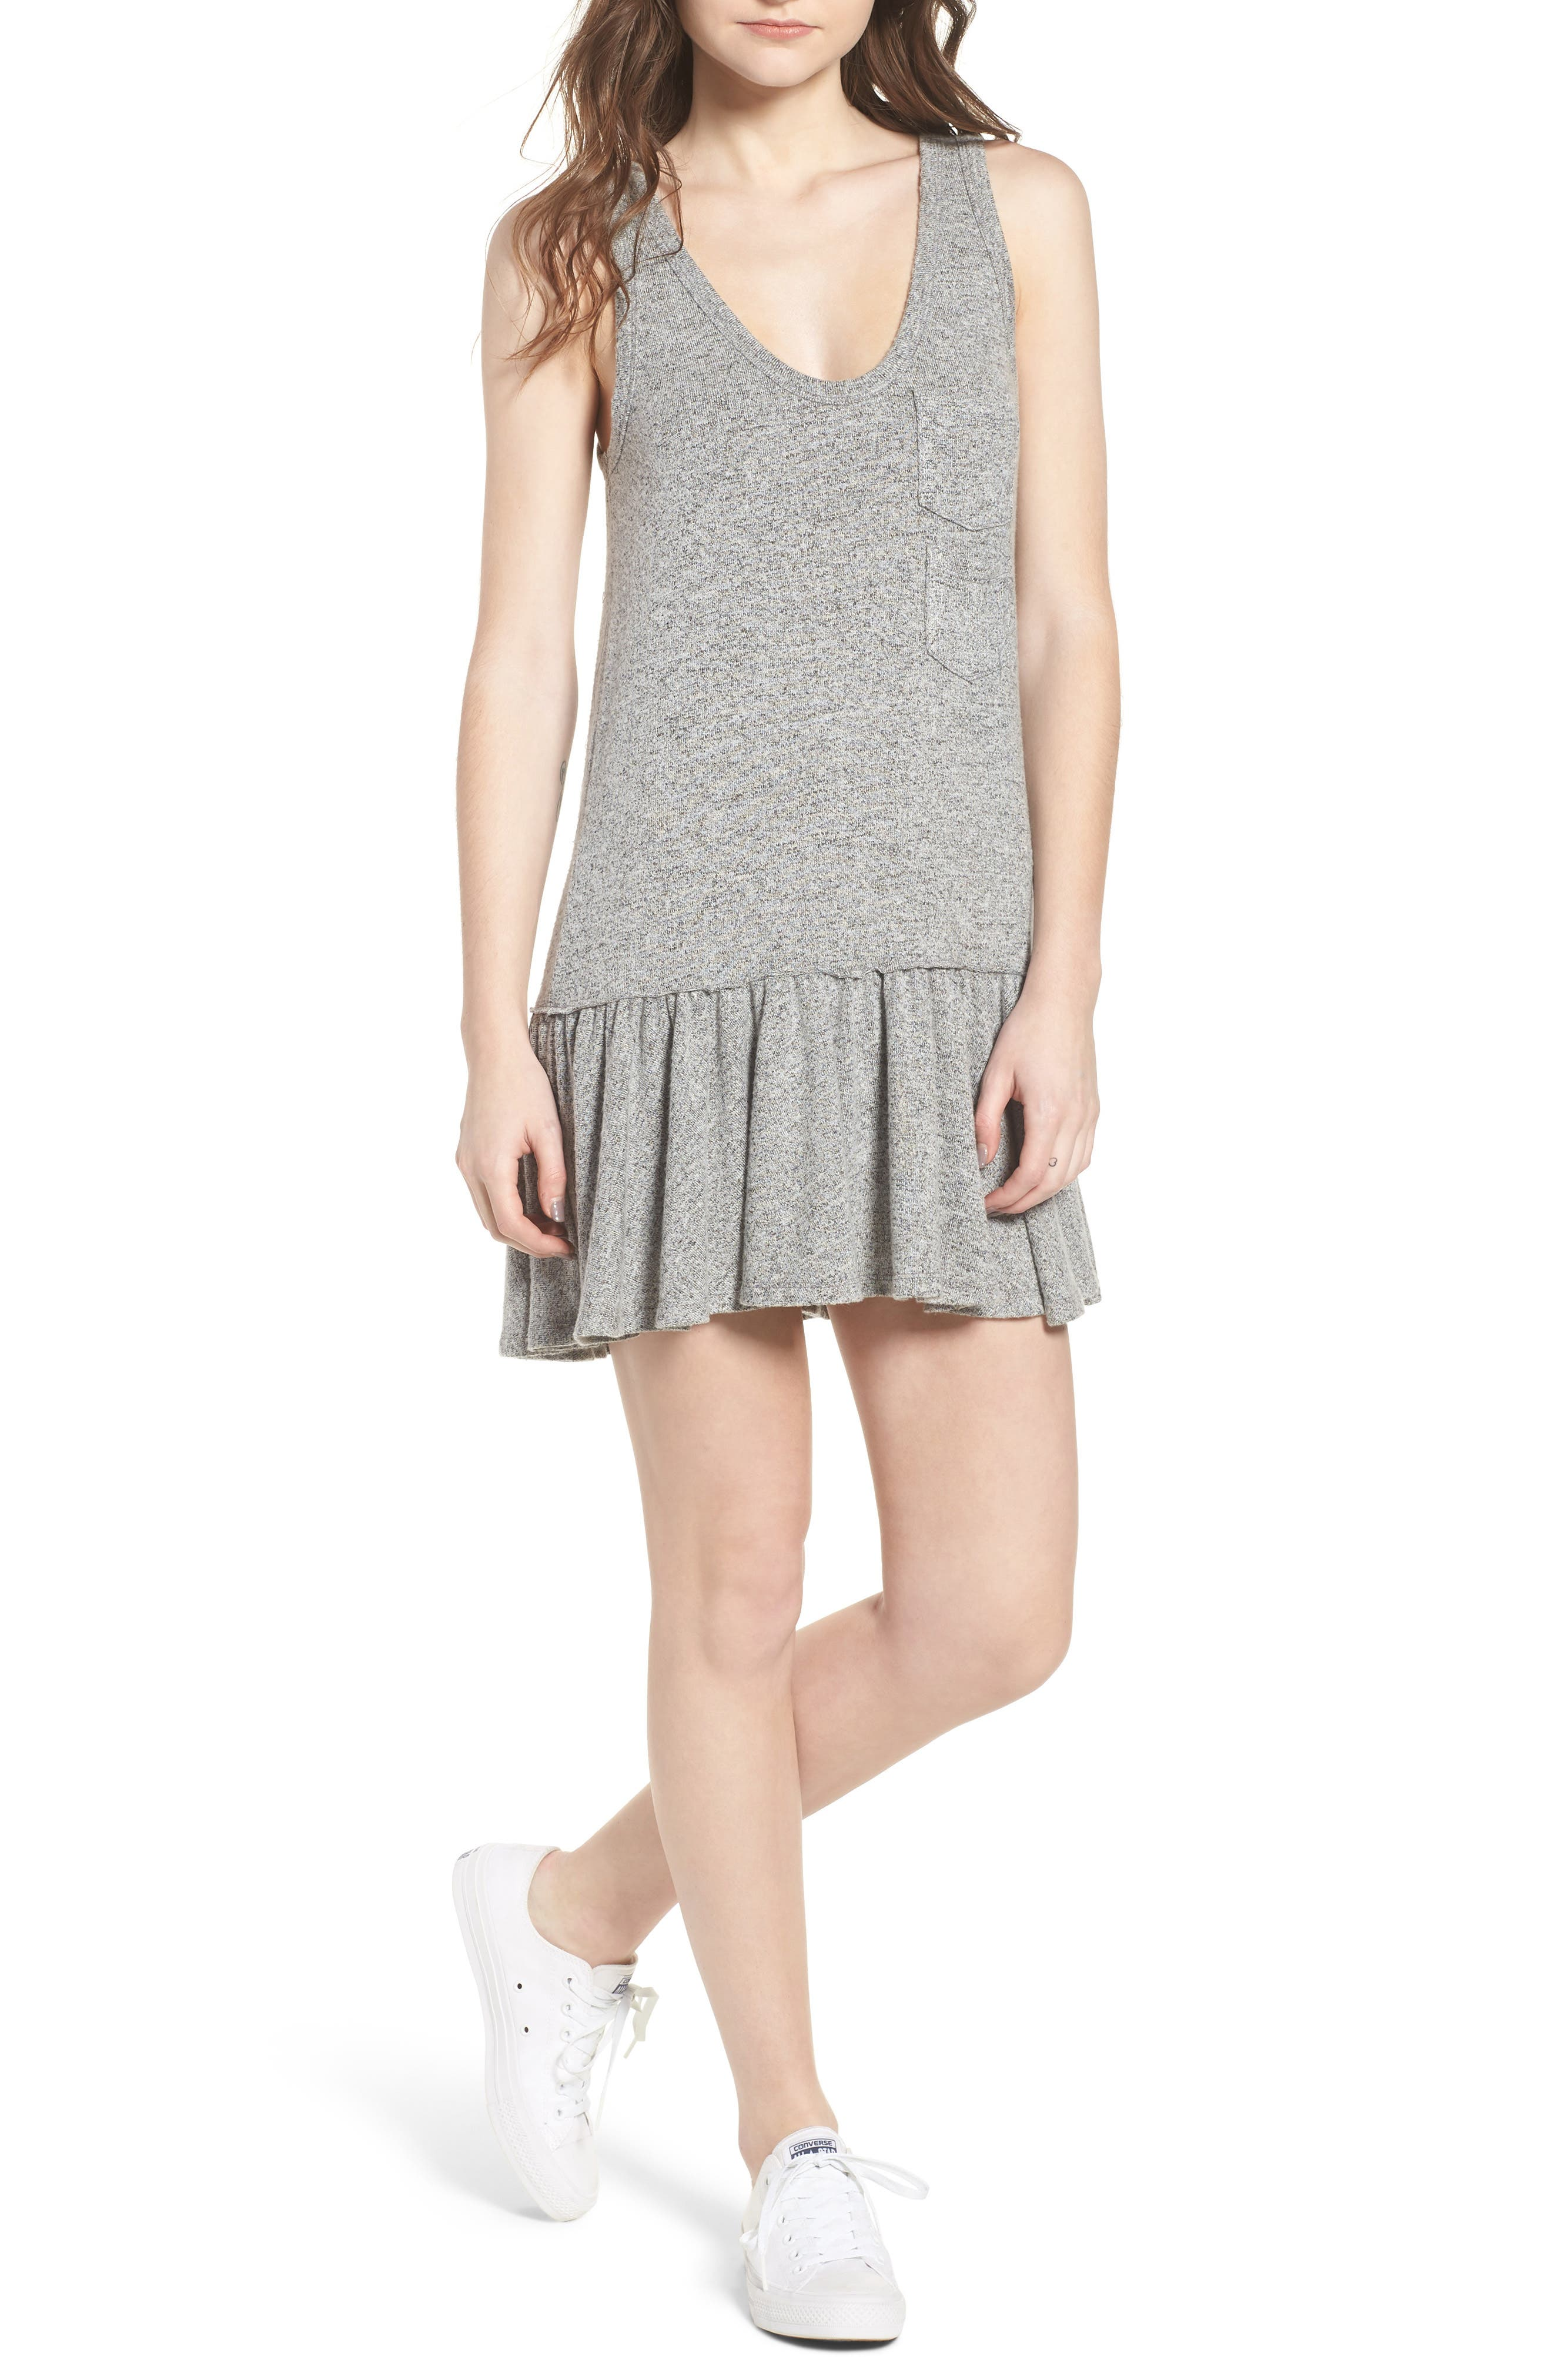 Summer in the City Tank Dress,                             Main thumbnail 1, color,